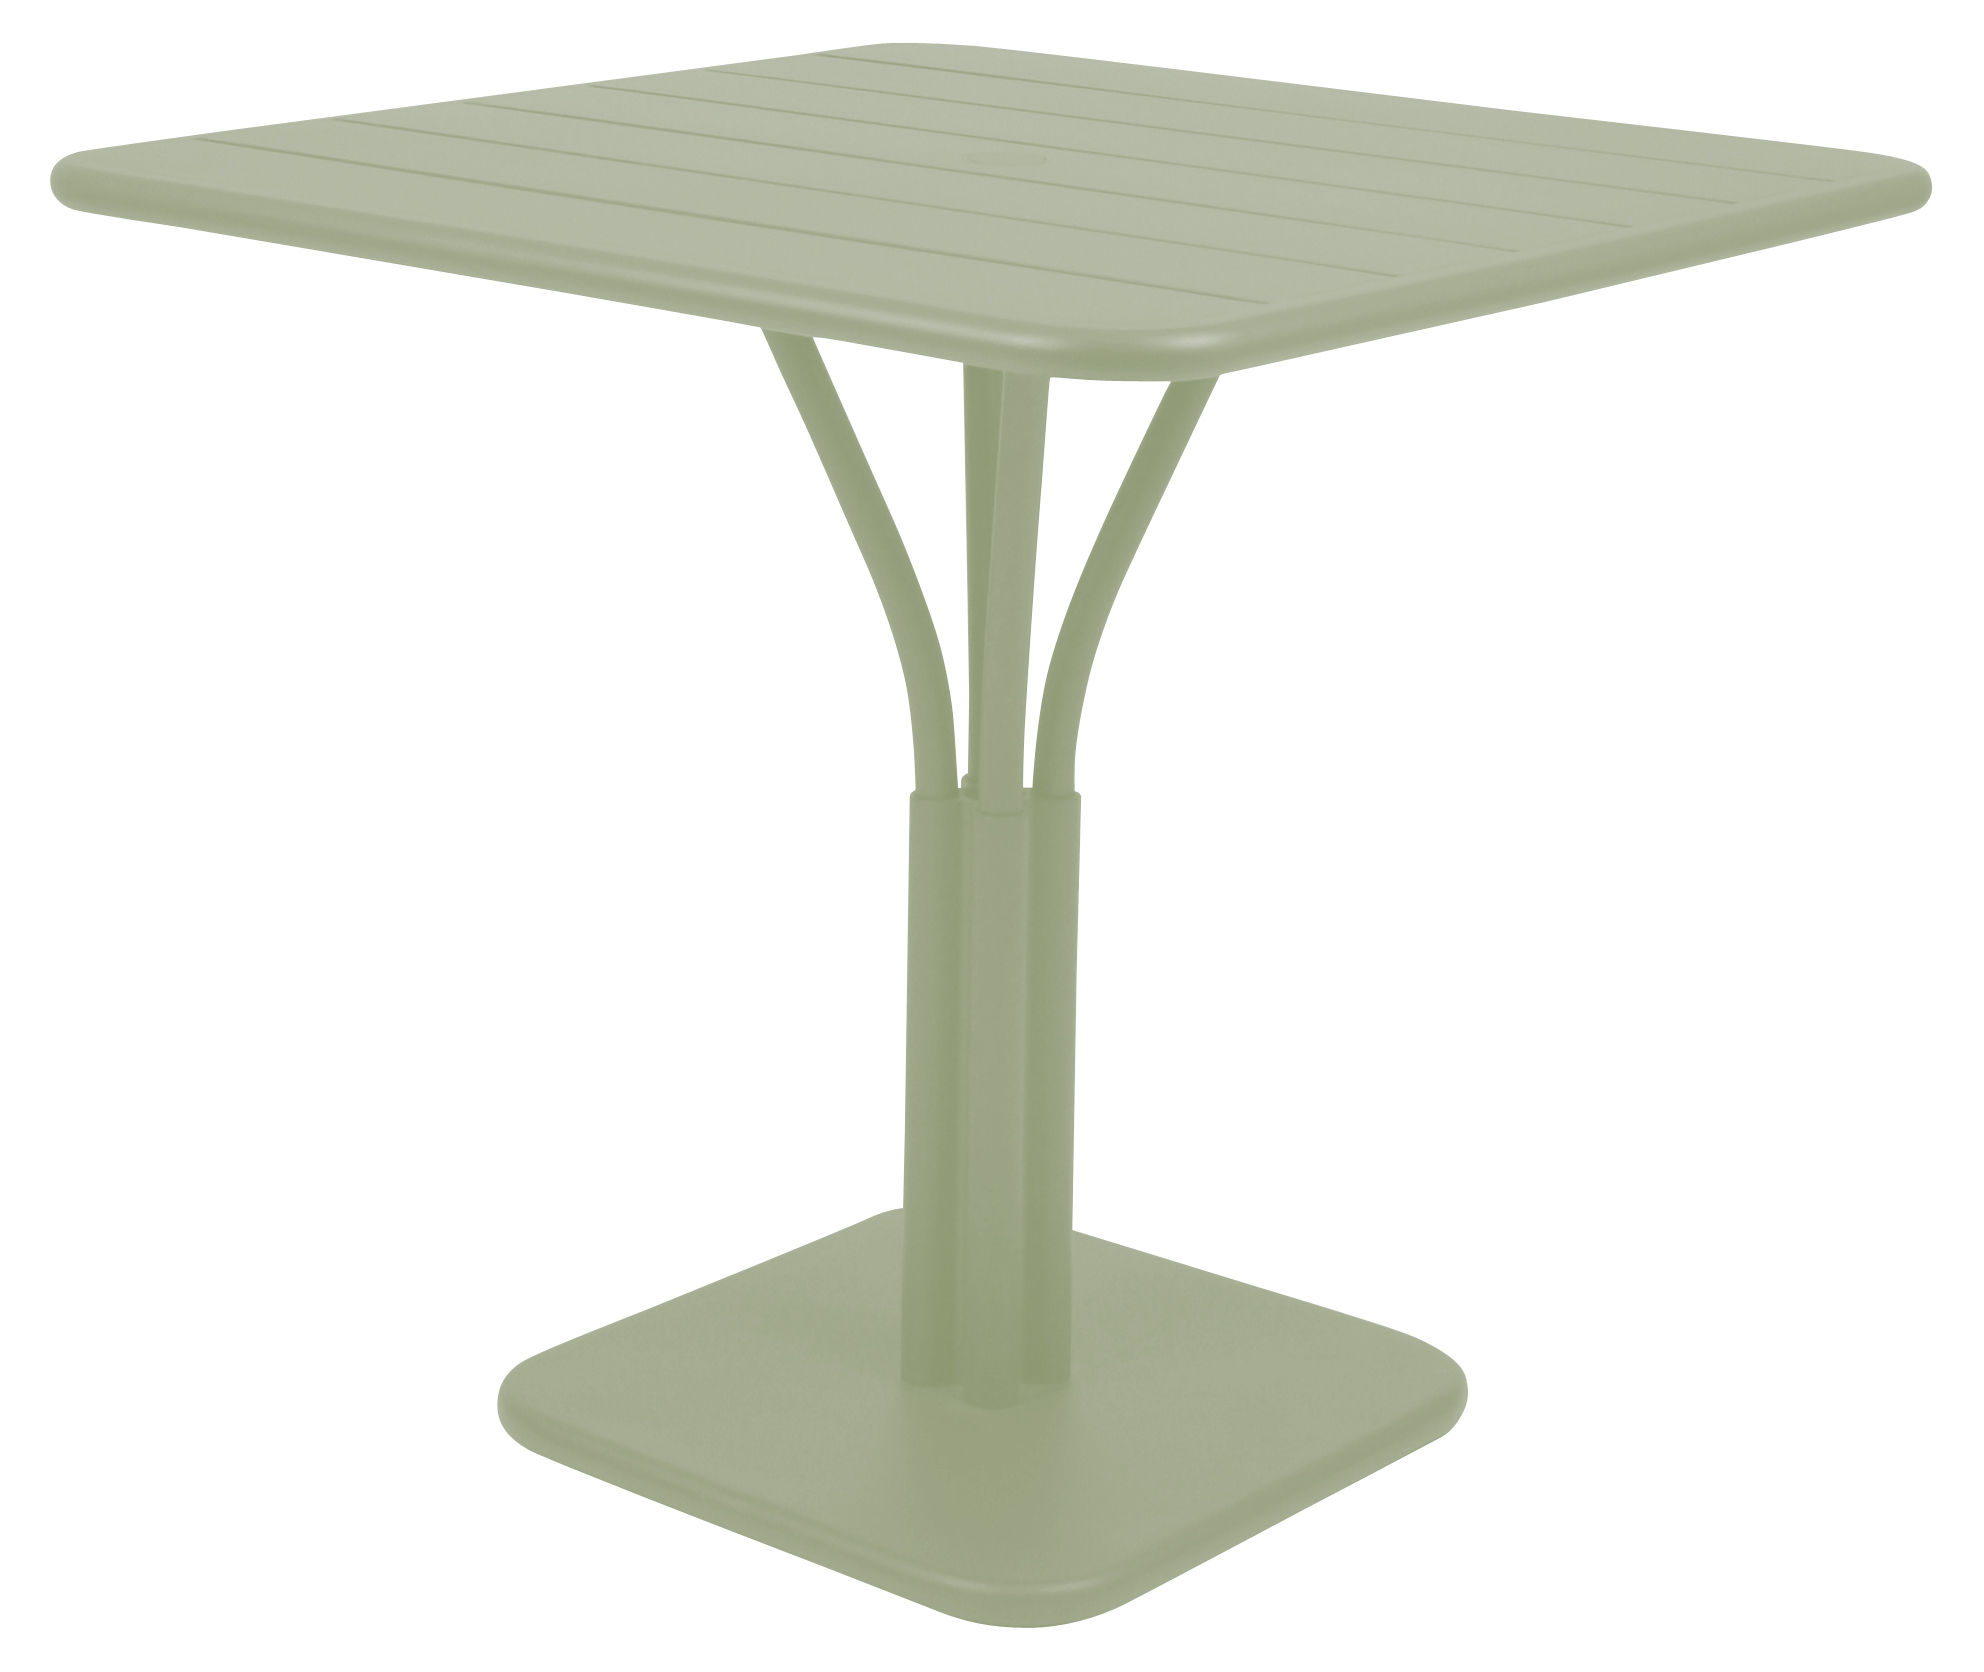 Luxembourg garden table 80 x 80 cm willow green by fermob for Table luxembourg fermob